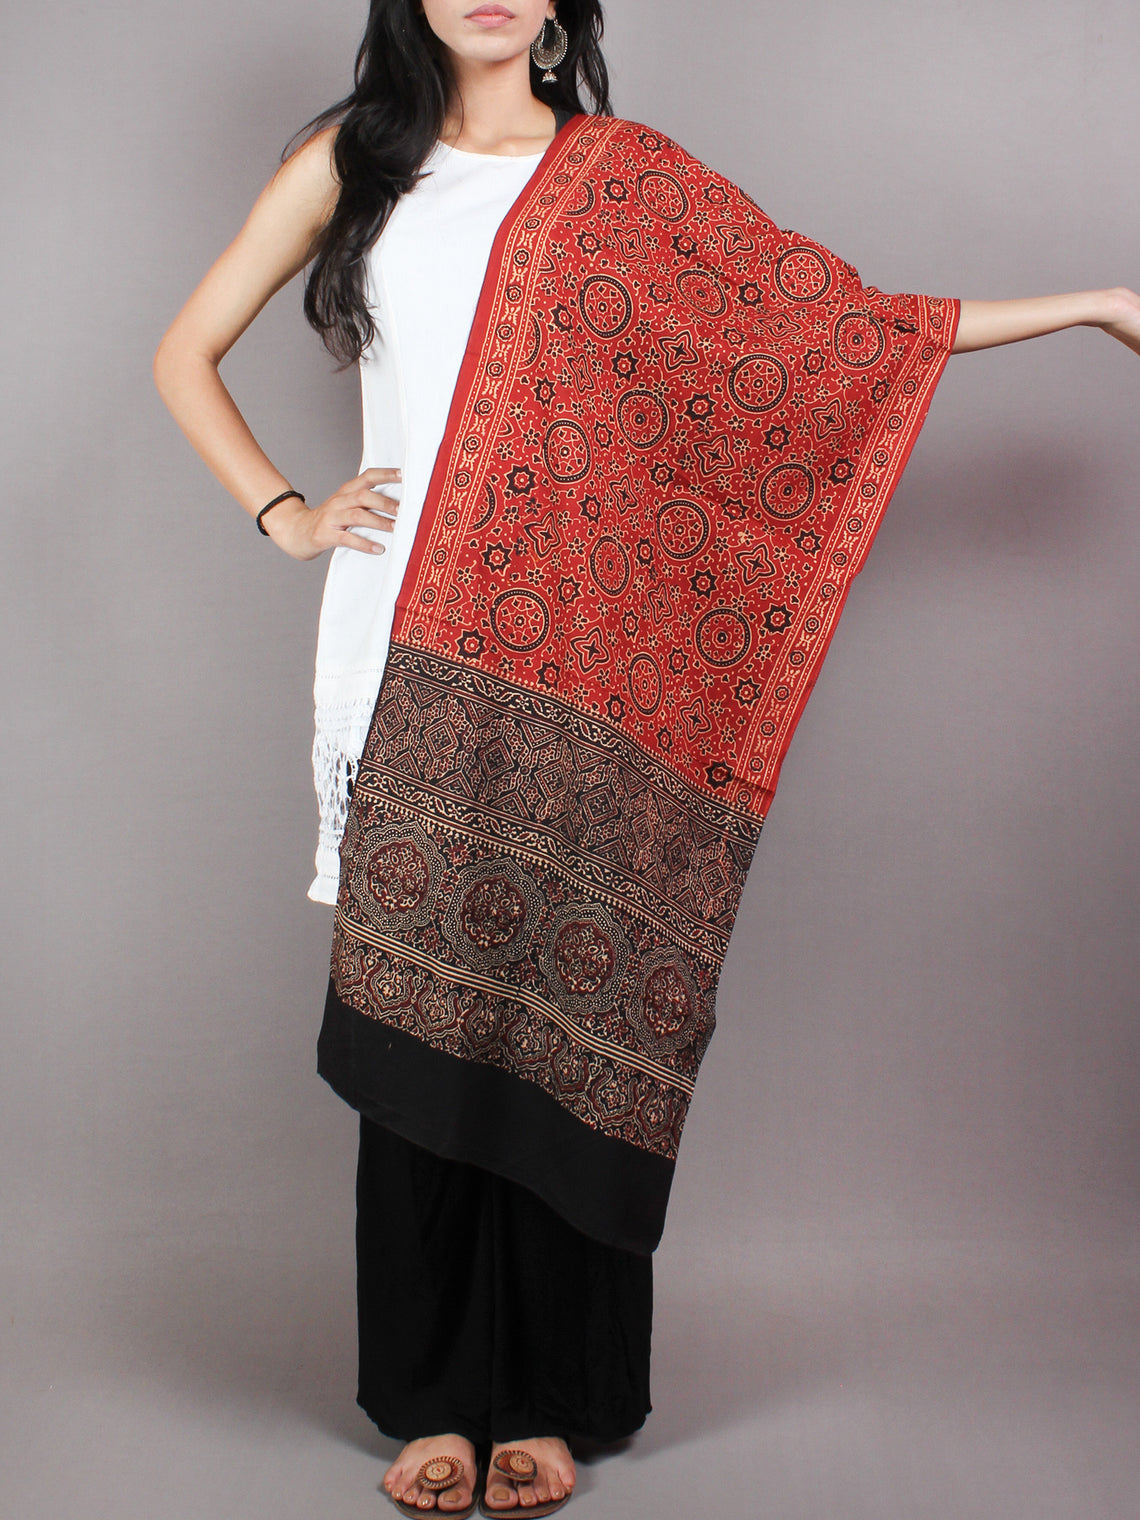 Red Black Mughal Nakashi Ajrakh Hand Block Printed Cotton Stole - S6317025